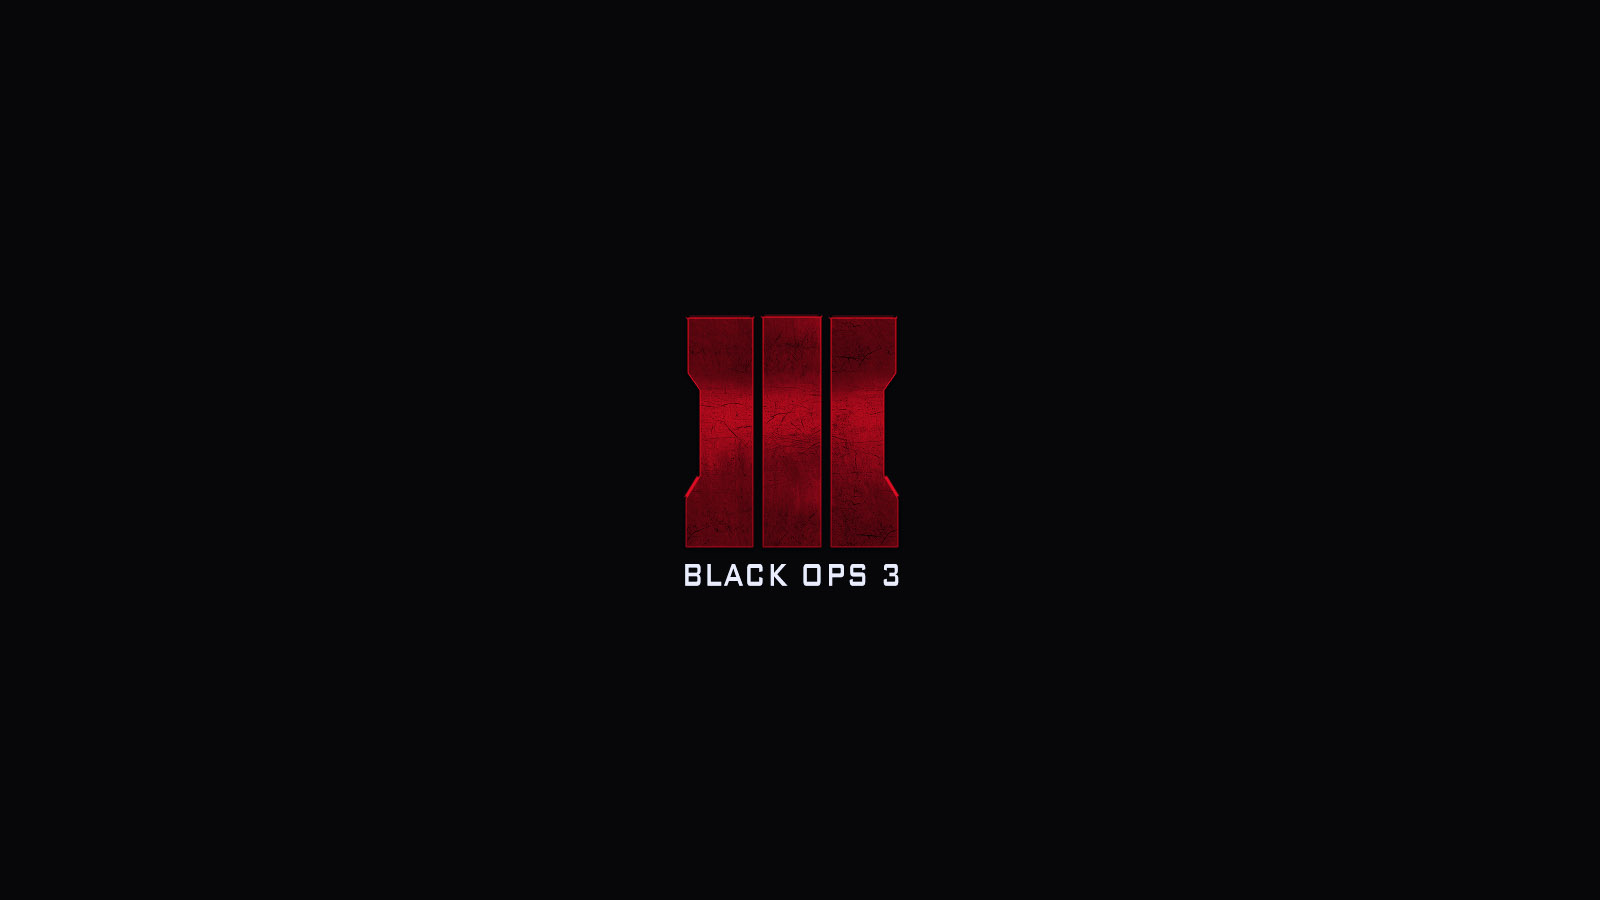 24 Call Of Duty Black Ops 3 Wallpapers Hd Free Download